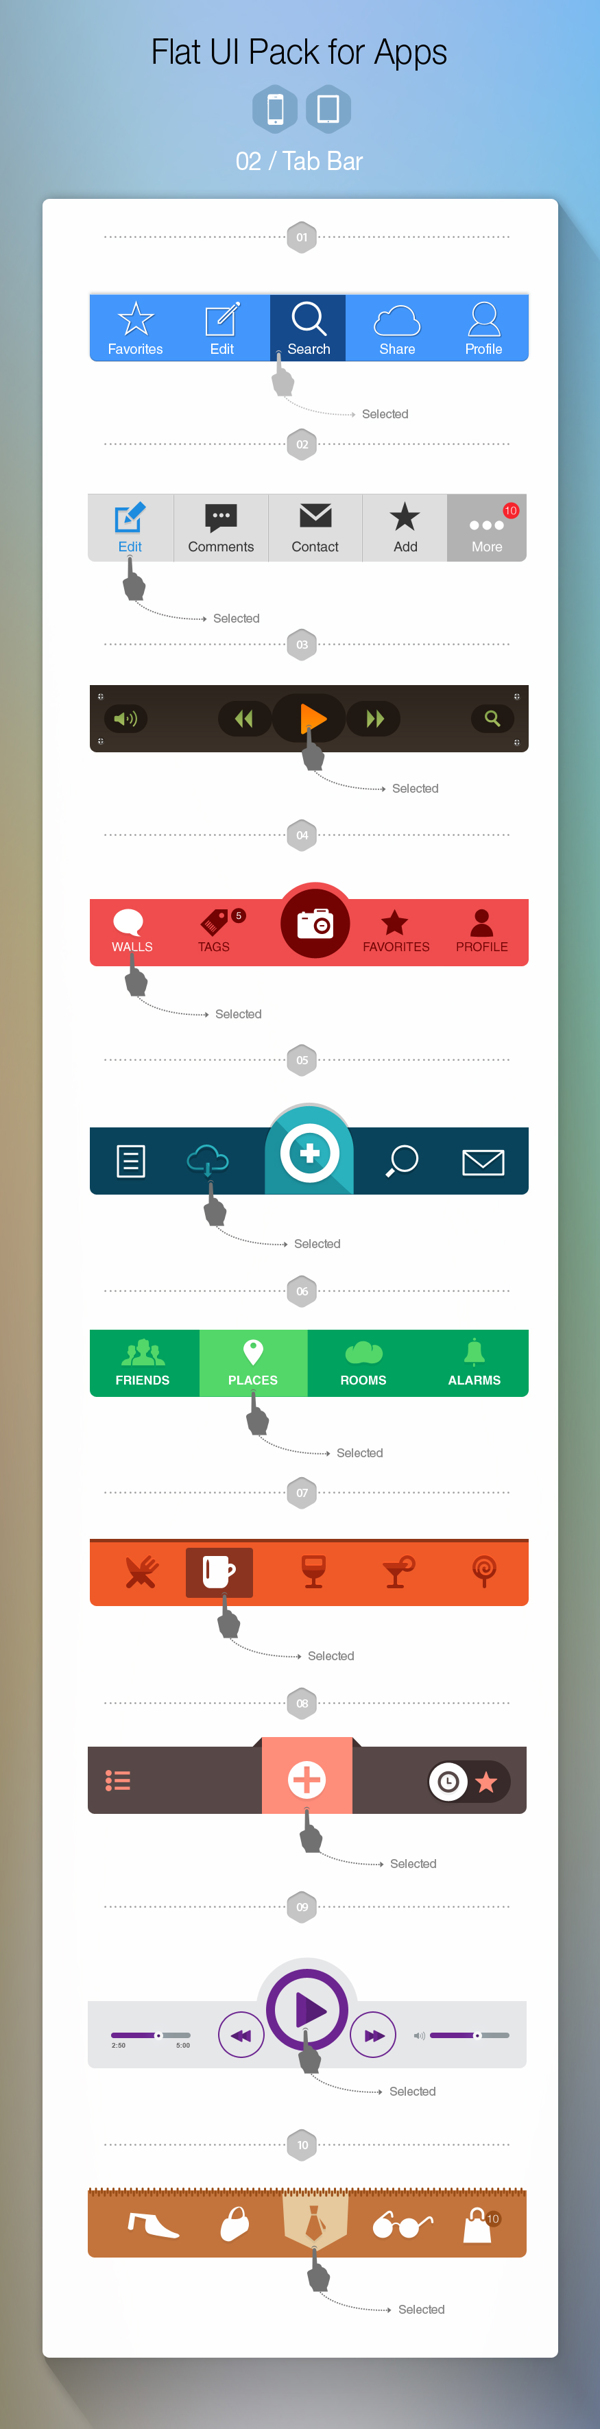 Flat UI Pack for Apps – Build Apps. Beautifully